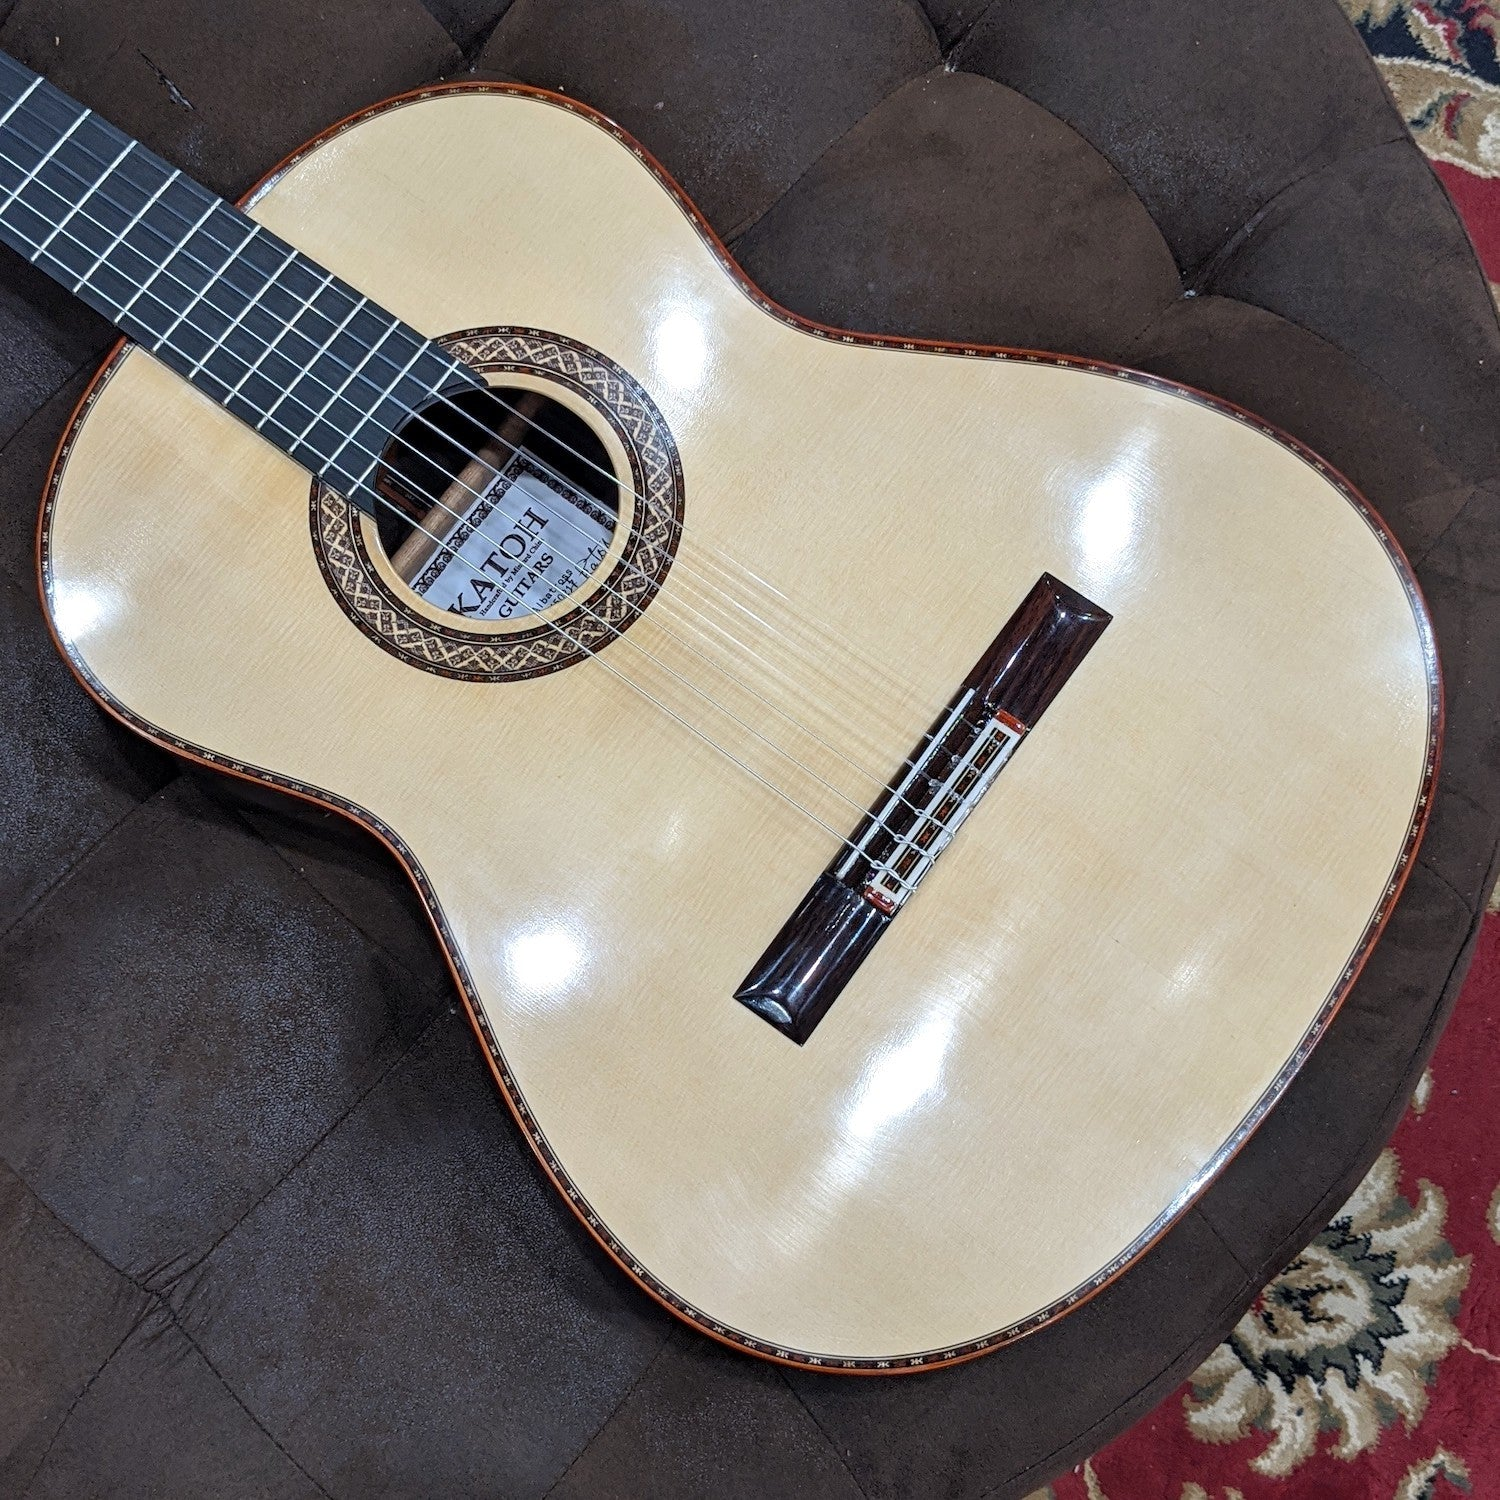 J. Godoy by Katoh Albatross Classical Guitar Spruce/Indian Rosewood